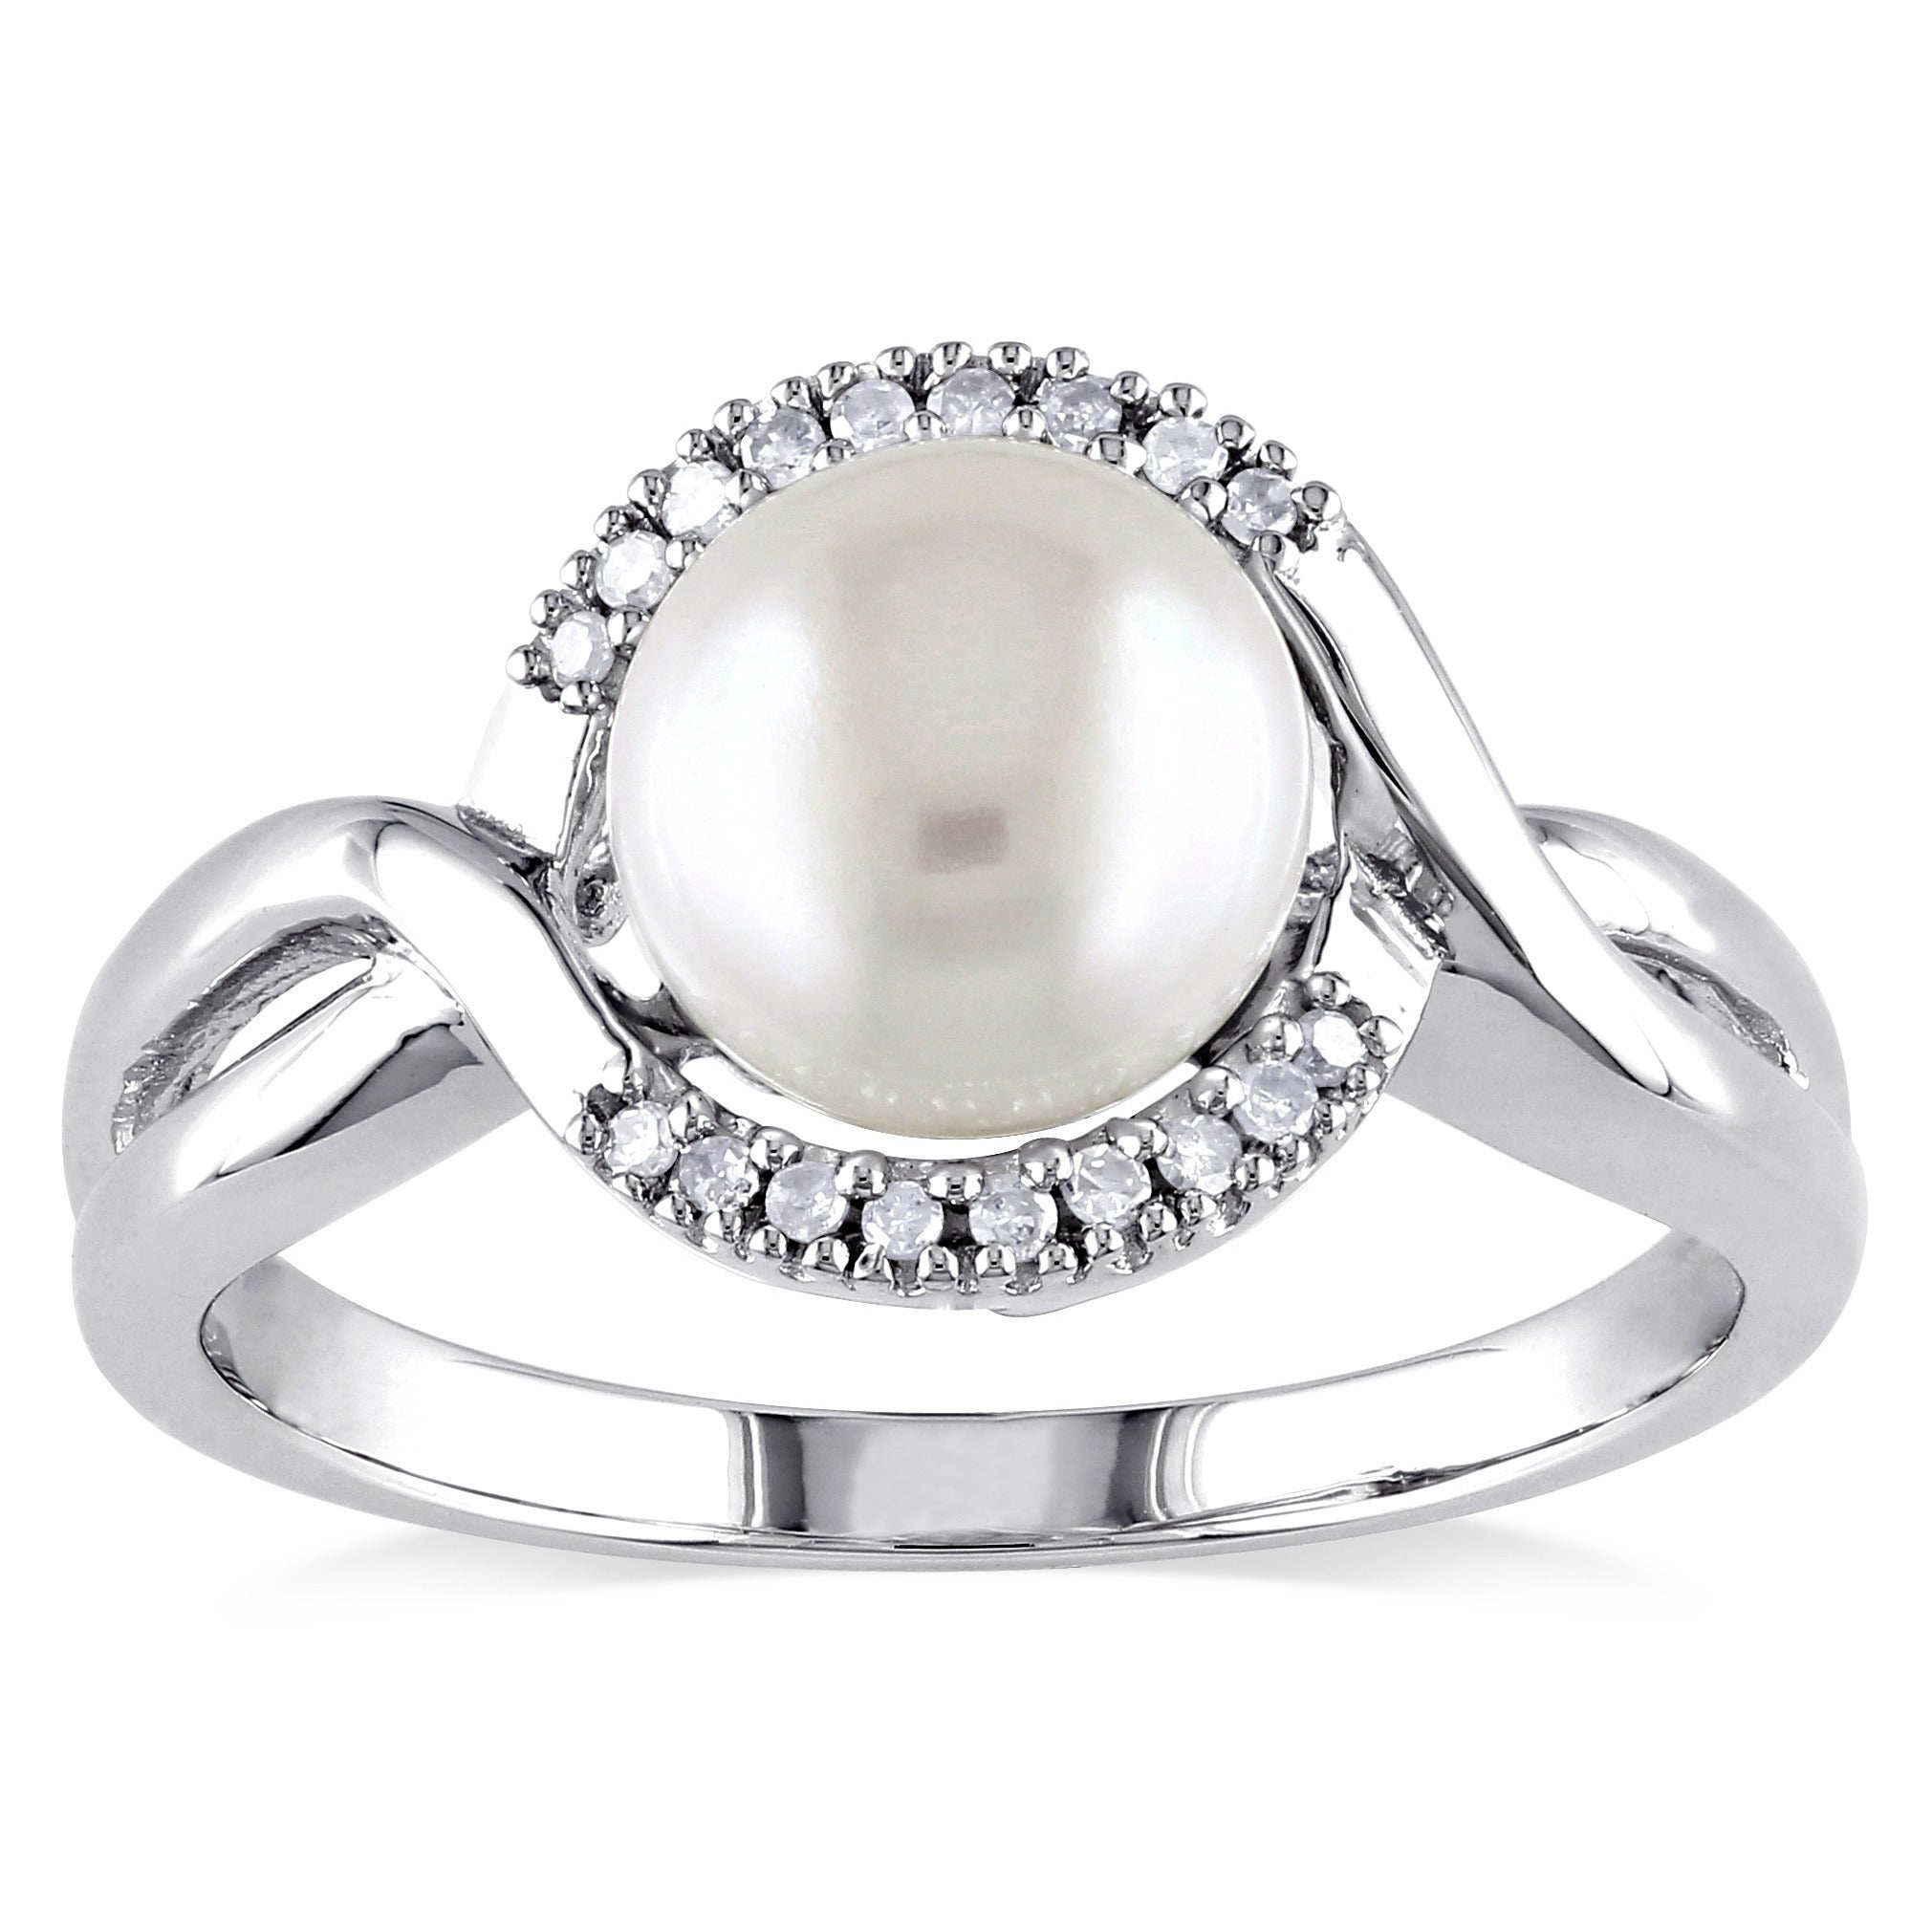 engagement wedding rings silver rsj arthurs collection pearl product designer sterling picture of